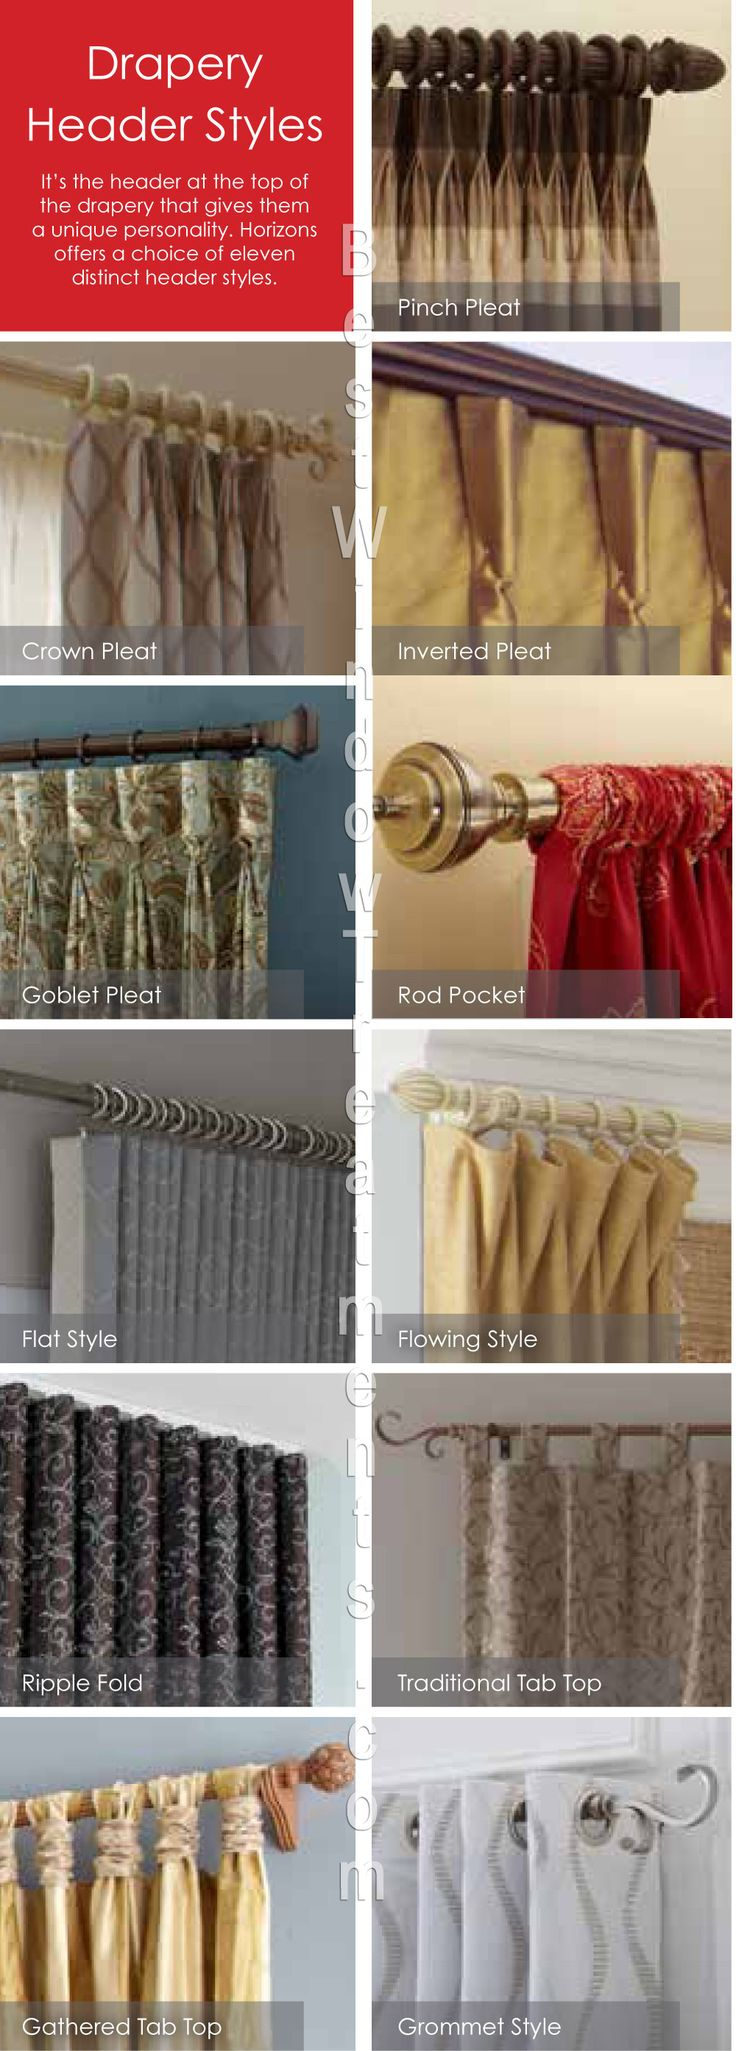 Types of Curtain headers